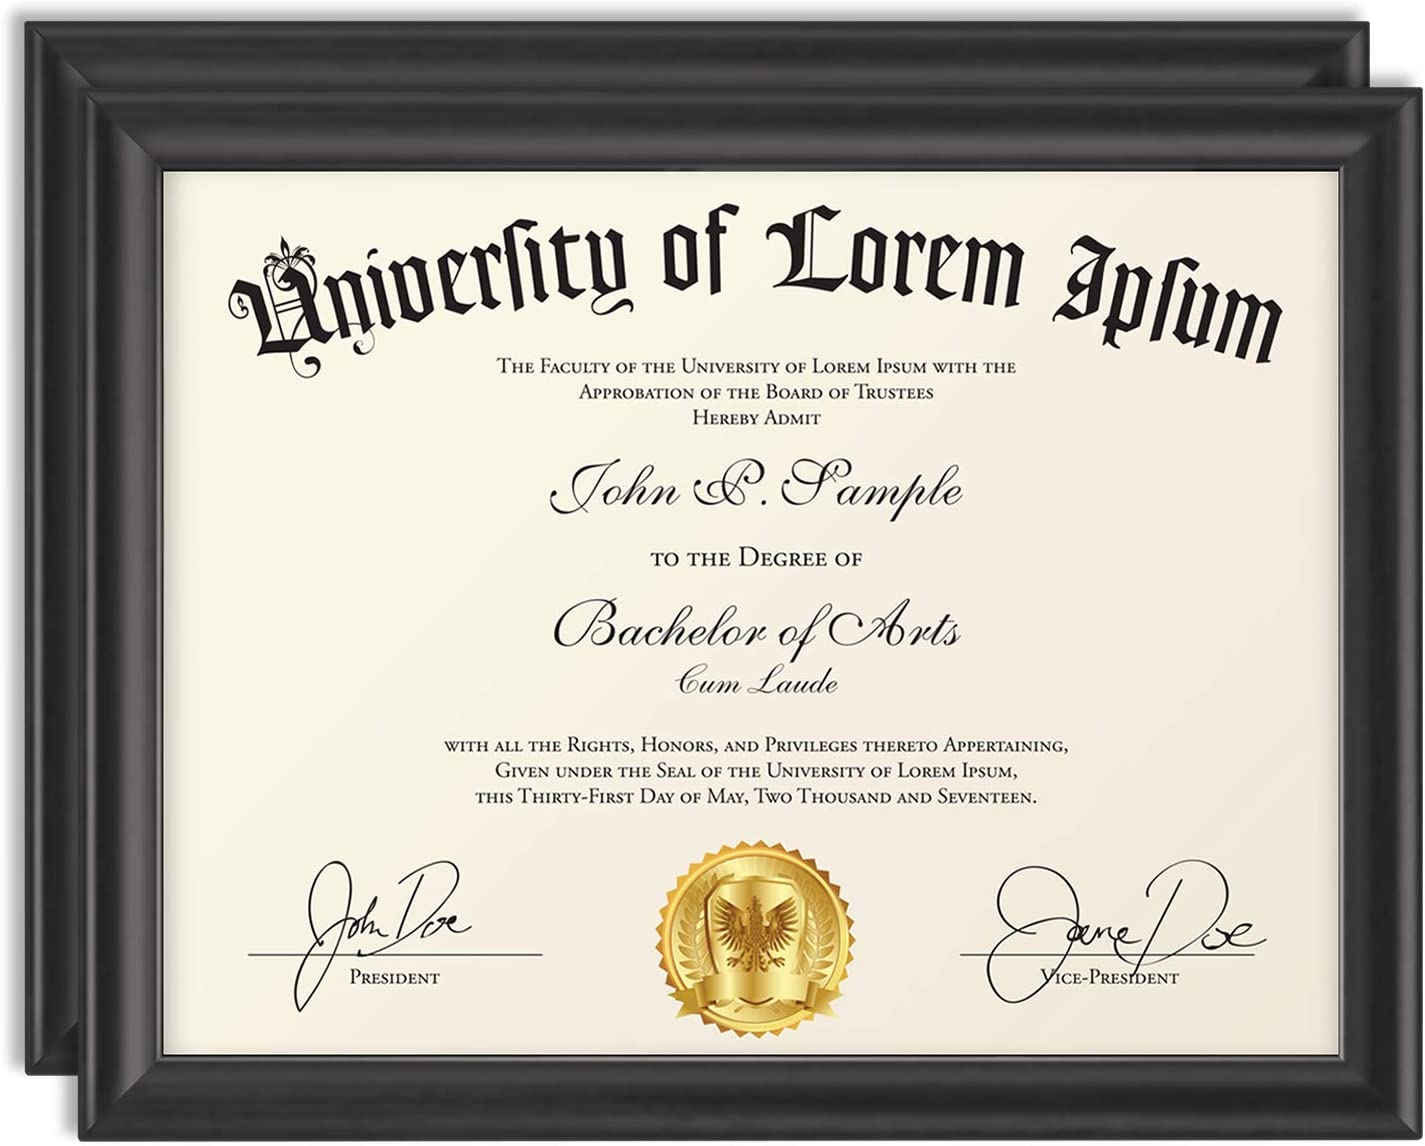 Icona Bay 8.5x11 Diploma Frame (2 Pack, Black), Certificate Frame, Document Frame, Composite Wood Frame for Walls or Tables, Set of 2 Lakeland Collection